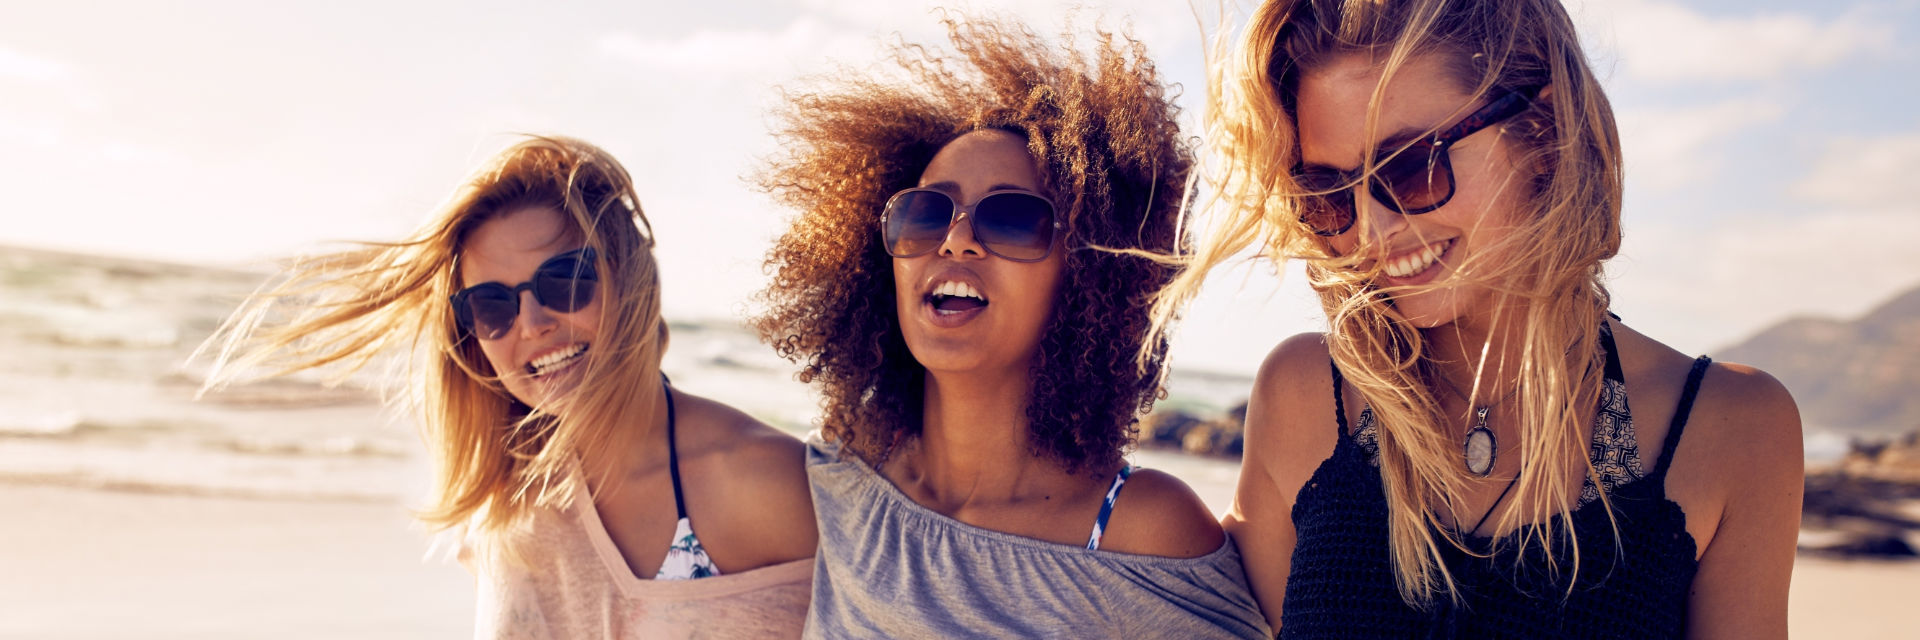 Three young attractive women with perfect smiles spending time on the beach.